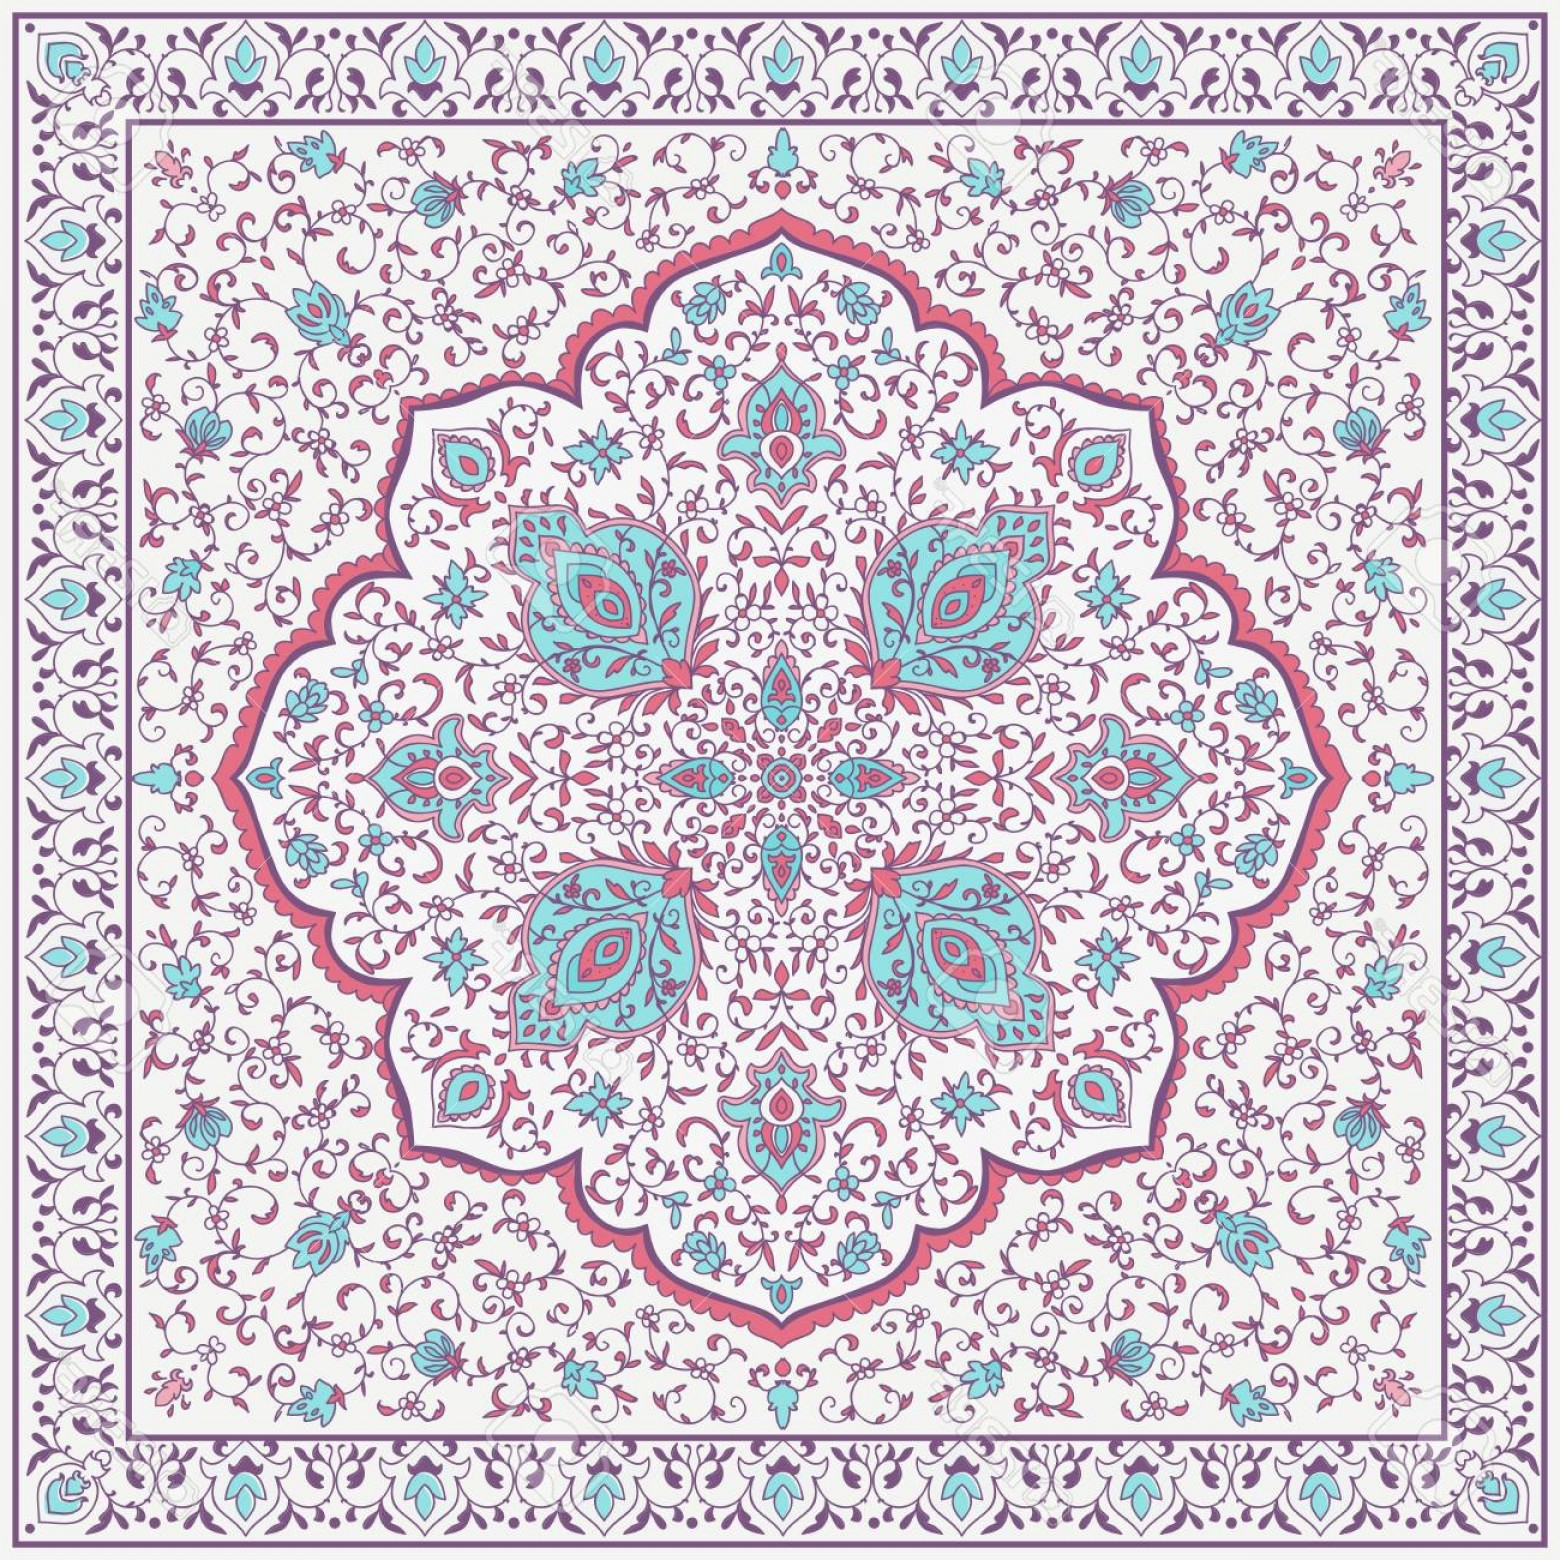 Aqua Victorian Medallions Vectors: Photostock Vector Islamic Or Indian Floral Pattern In Victorian Style Ornamental For Card For Cafe Shop Print Banner W